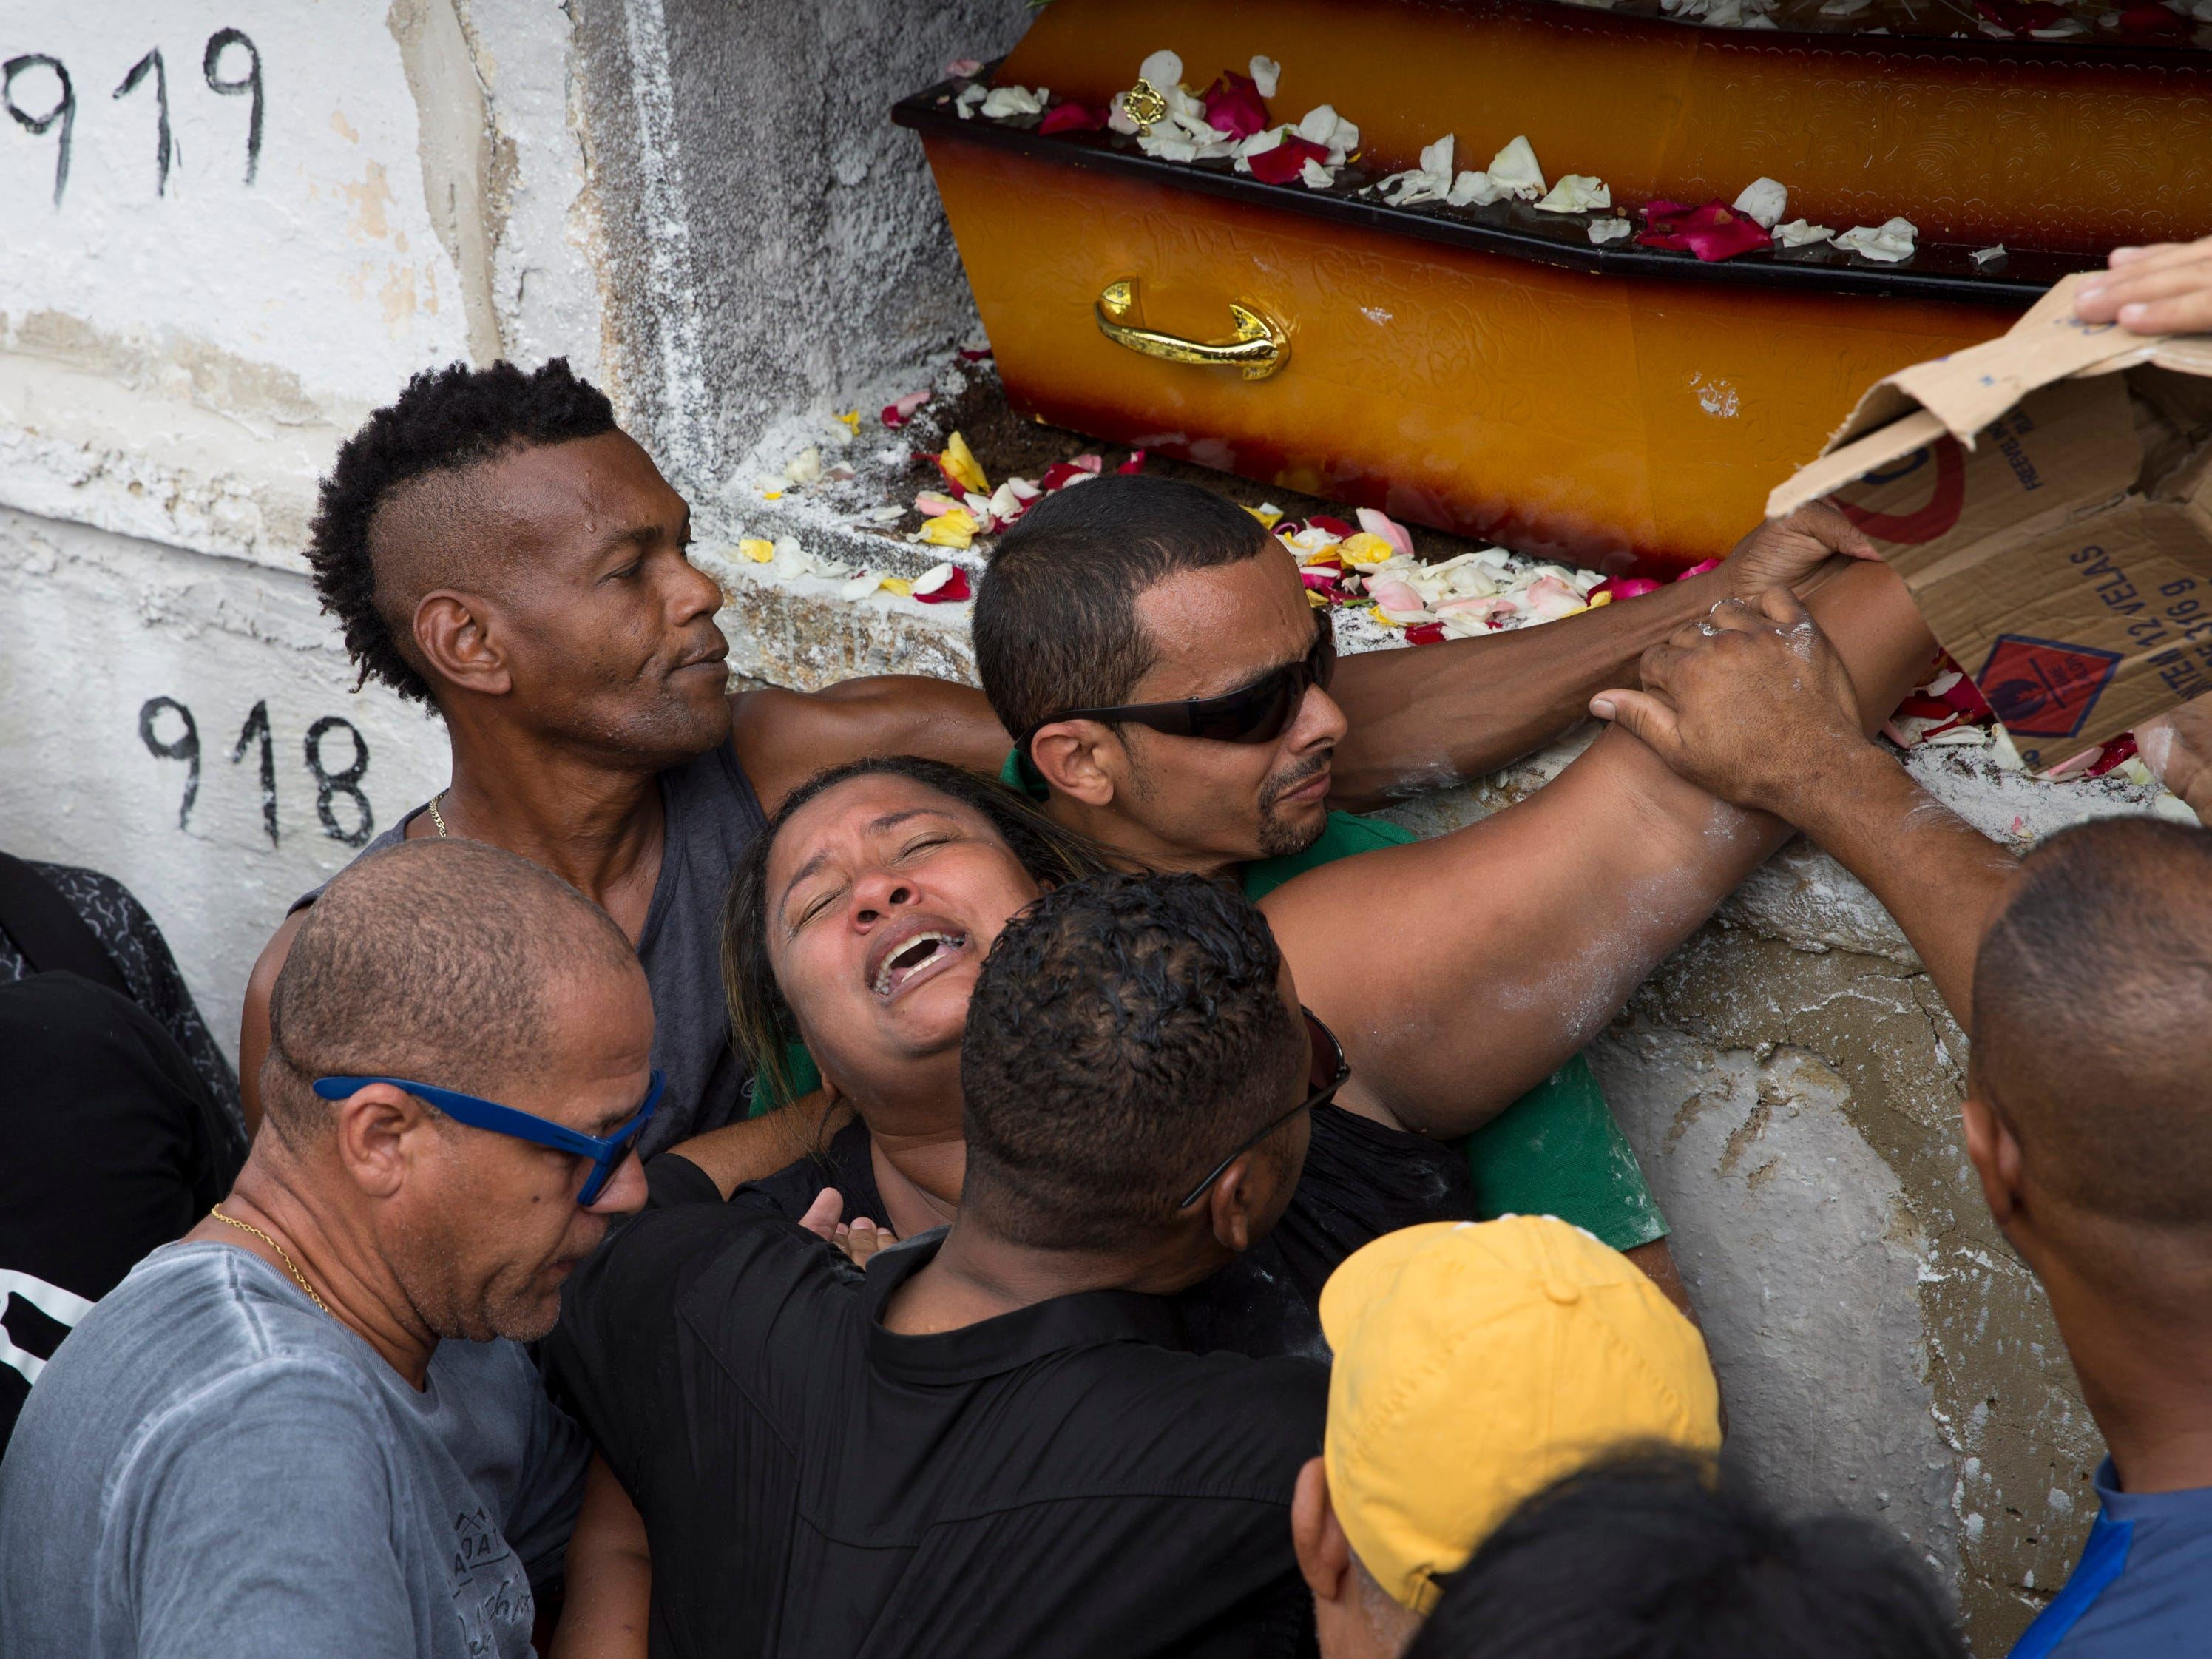 Luciana dos Santos, center, cries the burial of her husband, Evaldo dos Santos Rosa, who was killed by armed forces when they mistook his car for that of criminals, in the Ricardo de Albuquerque neighborhood of Rio de Janeiro, Brazil, Wednesday, April 10, 2019. Dos Santos Rosa was driving to a baby shower with his 7-year-old son, his wife, her stepfather and another woman when soldiers started shooting at them on Sunday.